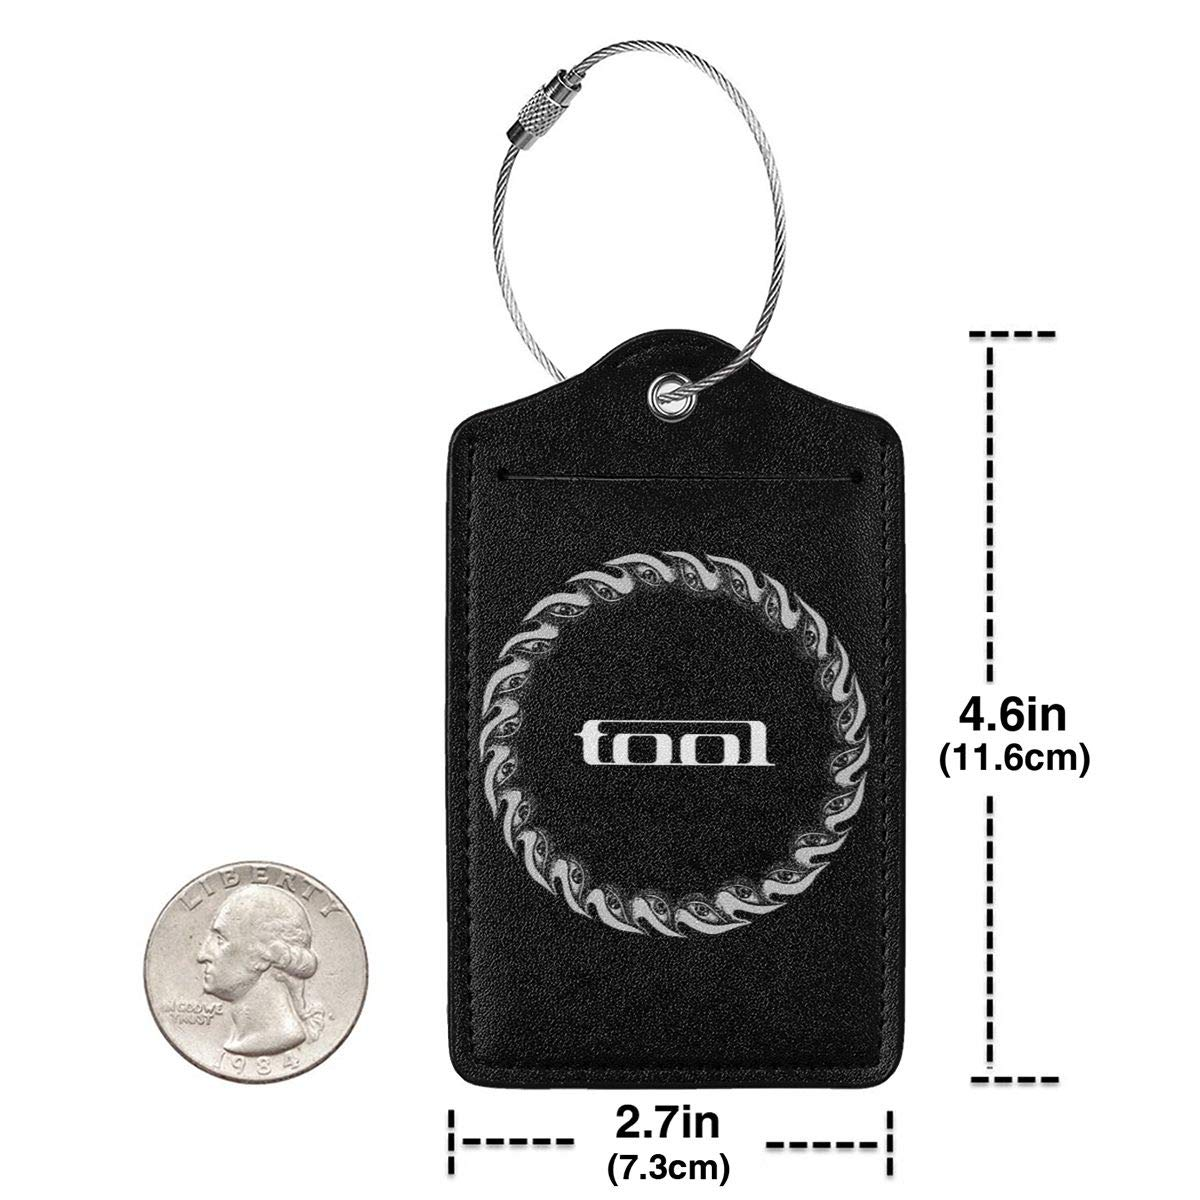 Tool Band Music Leather Luggage Tag Travel ID Label For Baggage Suitcase